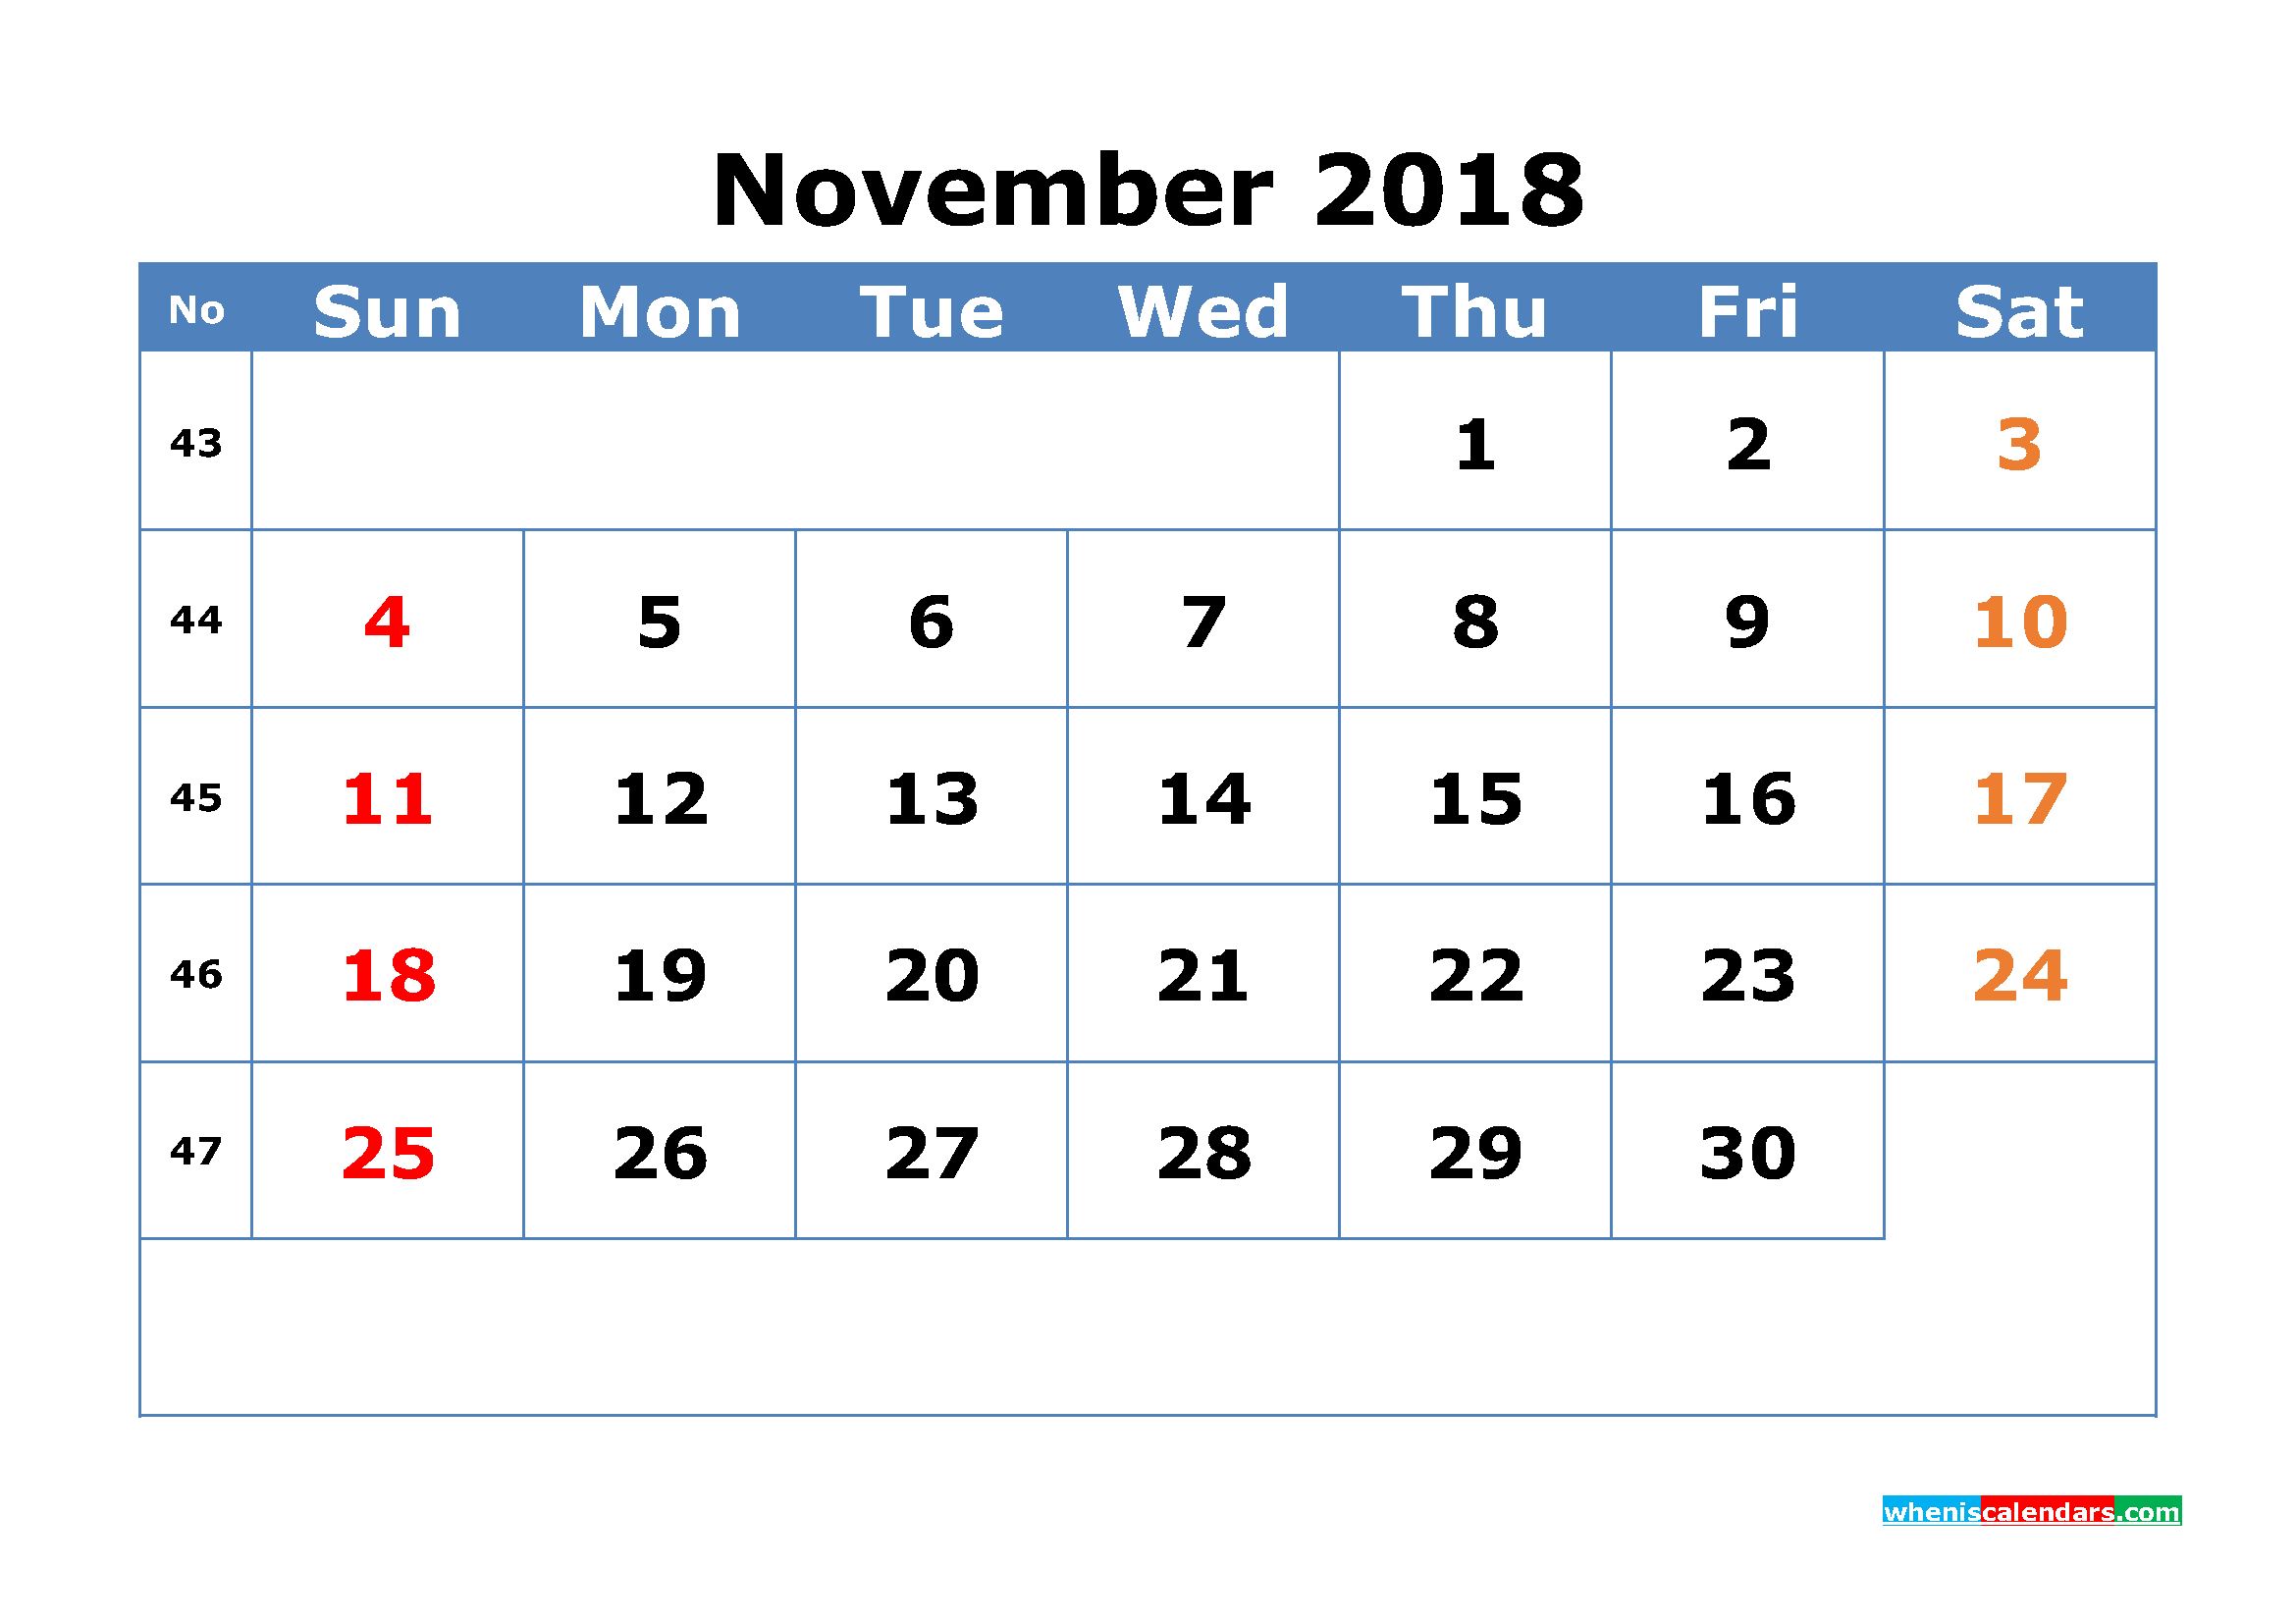 Printable Calendar November 2018 with Week Numbers Pdf, Image